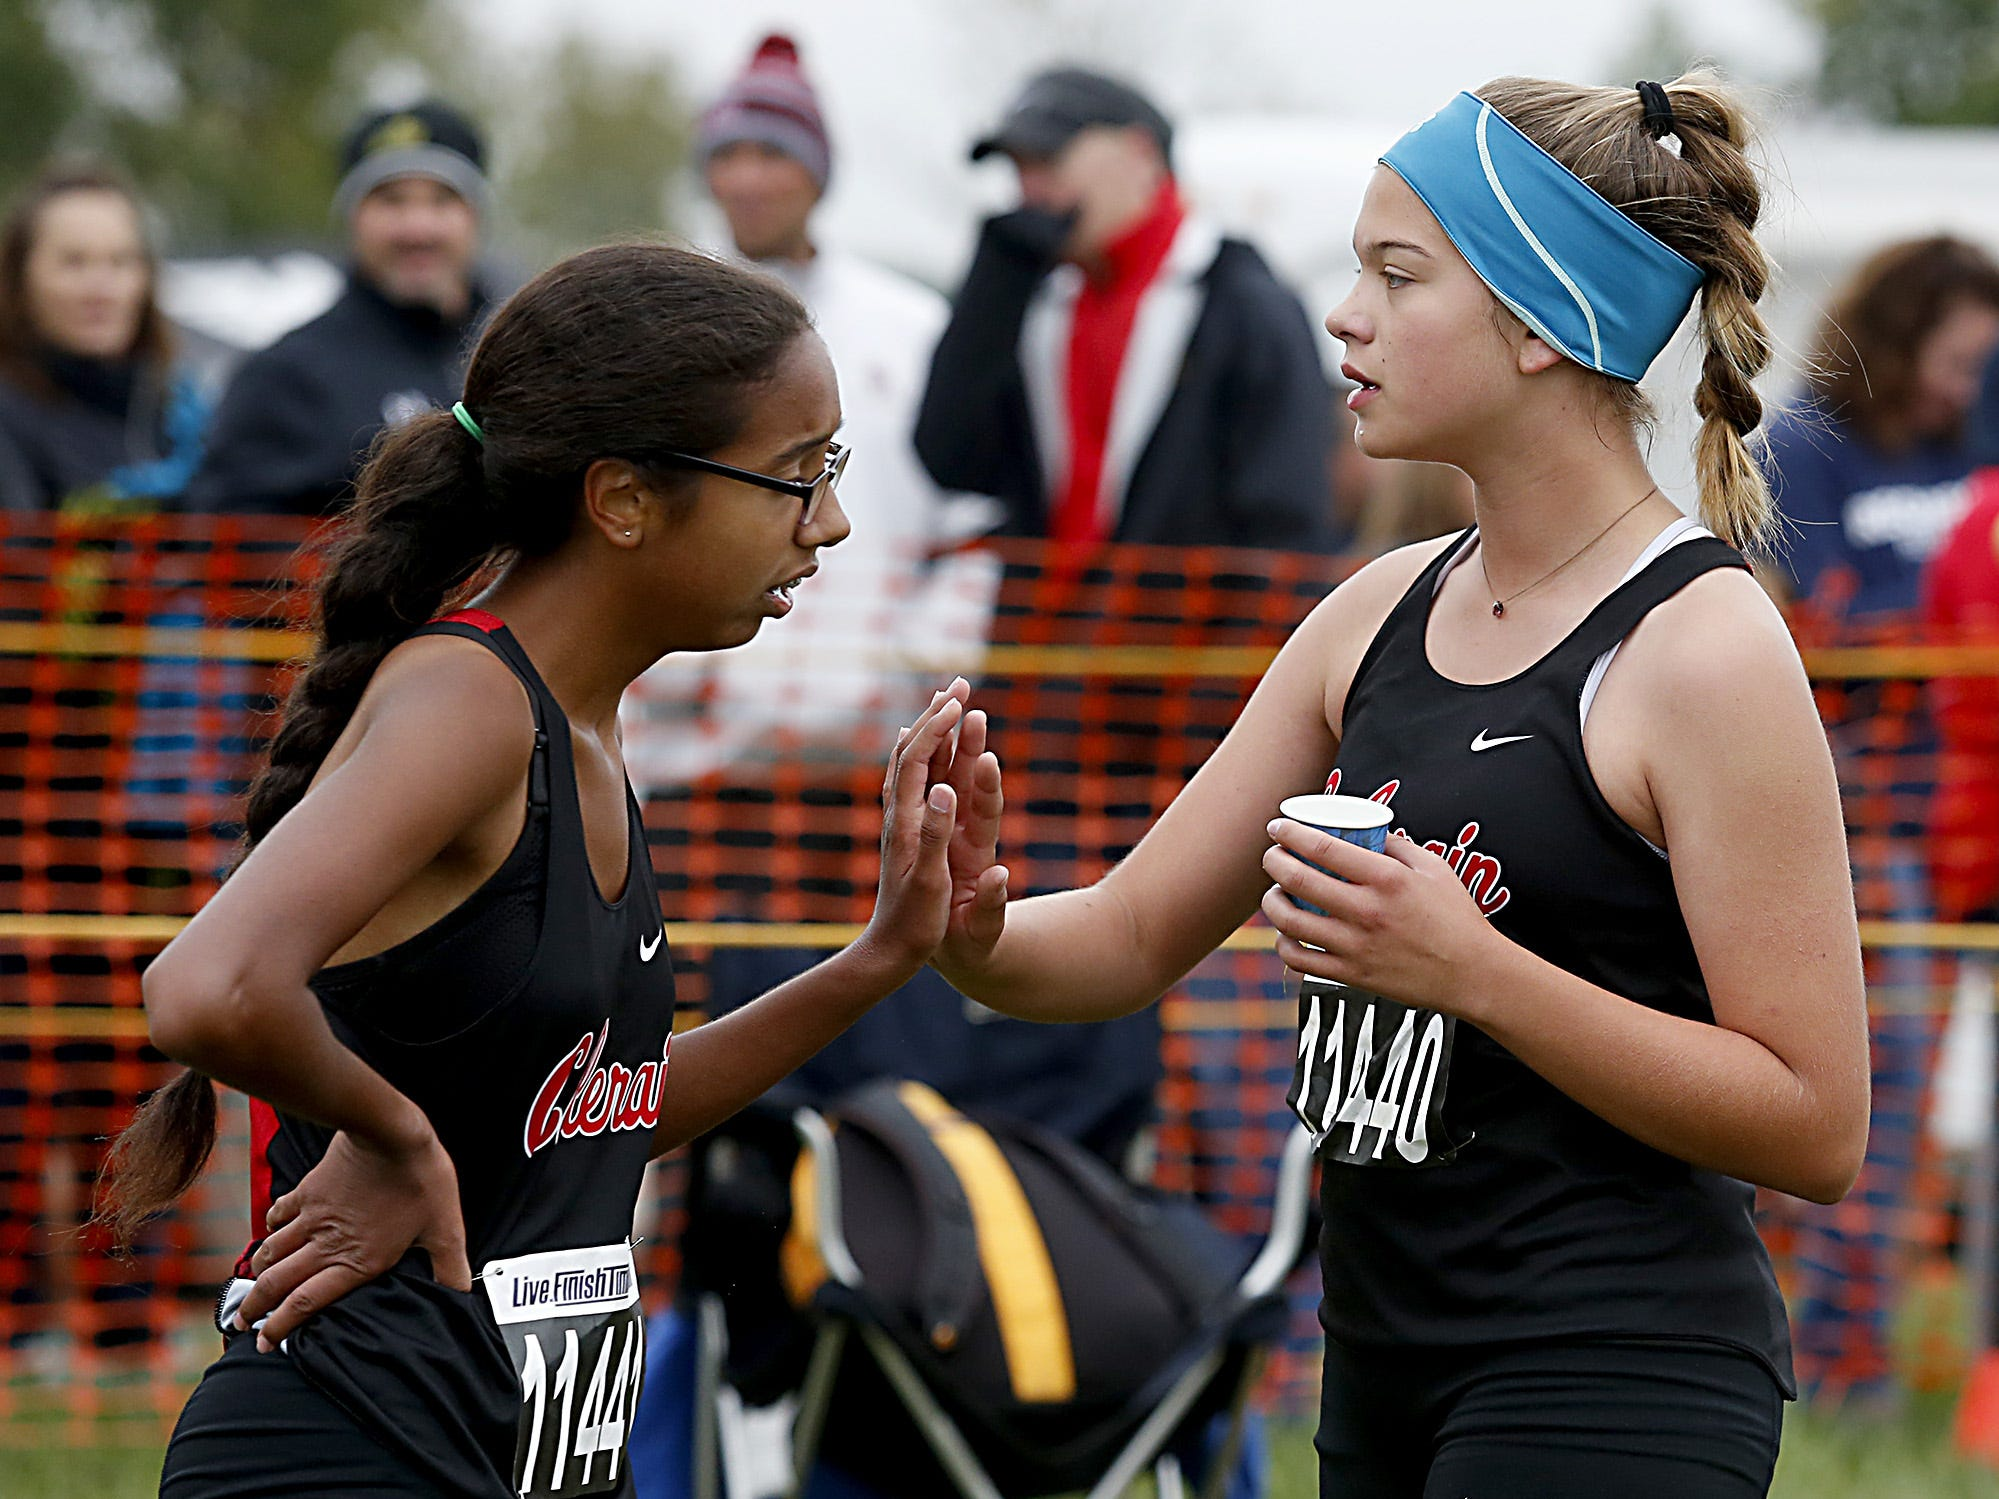 Colerain teammates Macia Turley and Eleanor Taphorn congratulate each other during the Greater Miami Conference Girls and Boys Cross Country Championships at Voice of America Park in West Chester Saturday, Oct. 13, 2018.